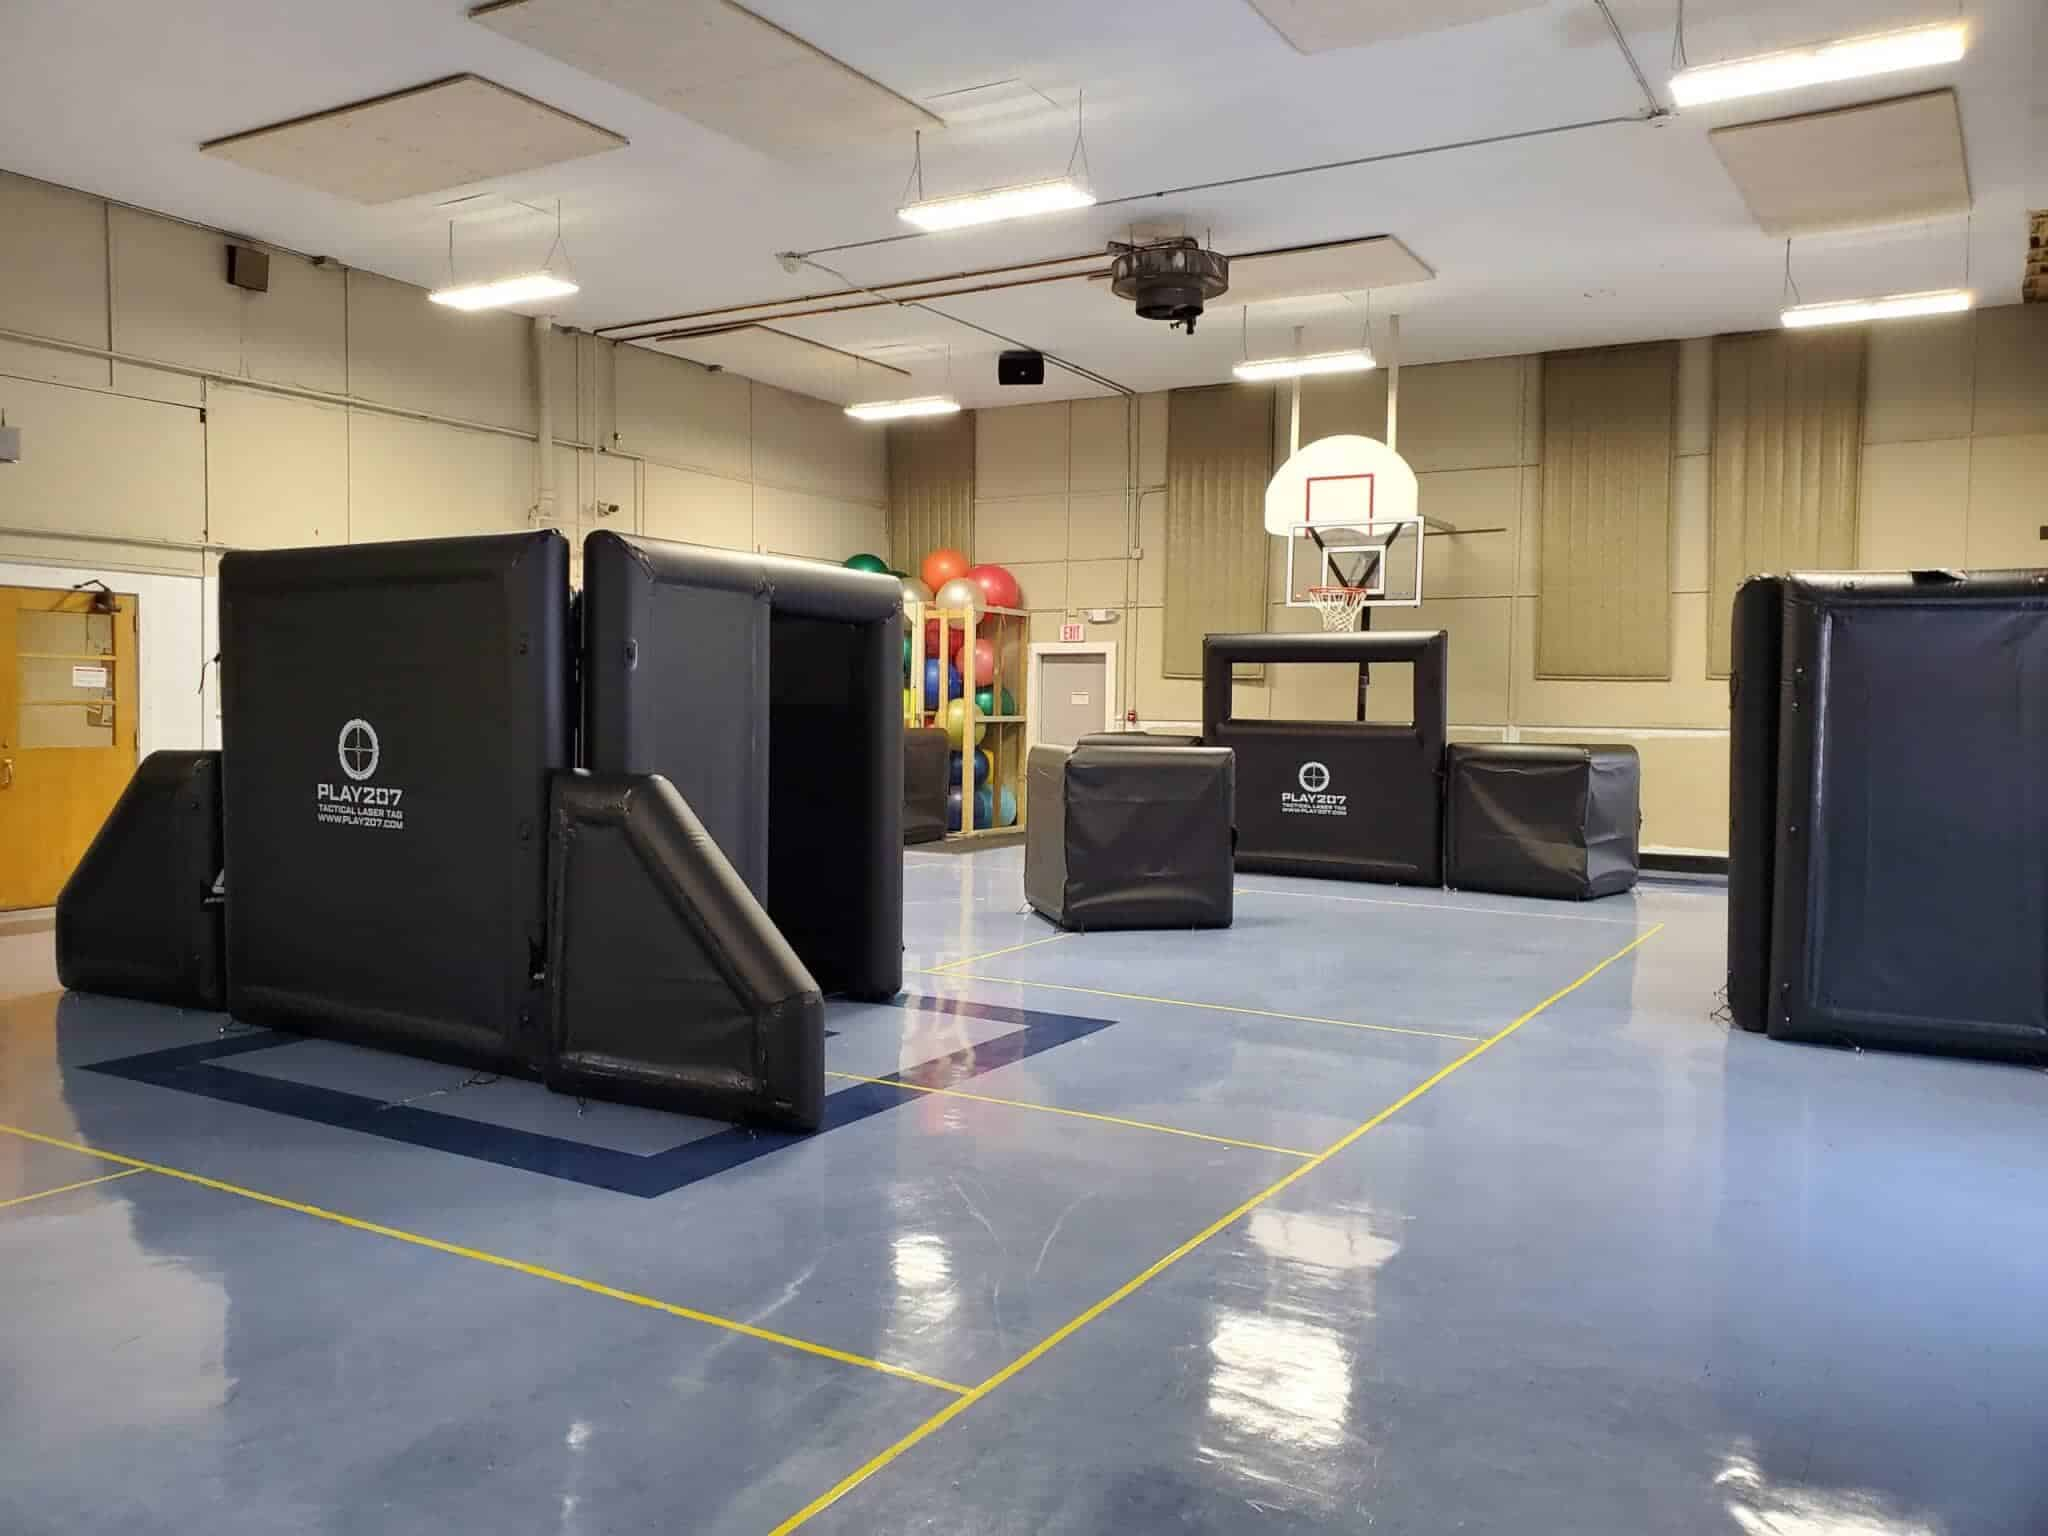 Play207 Tactical Laser Tag Bunker 2